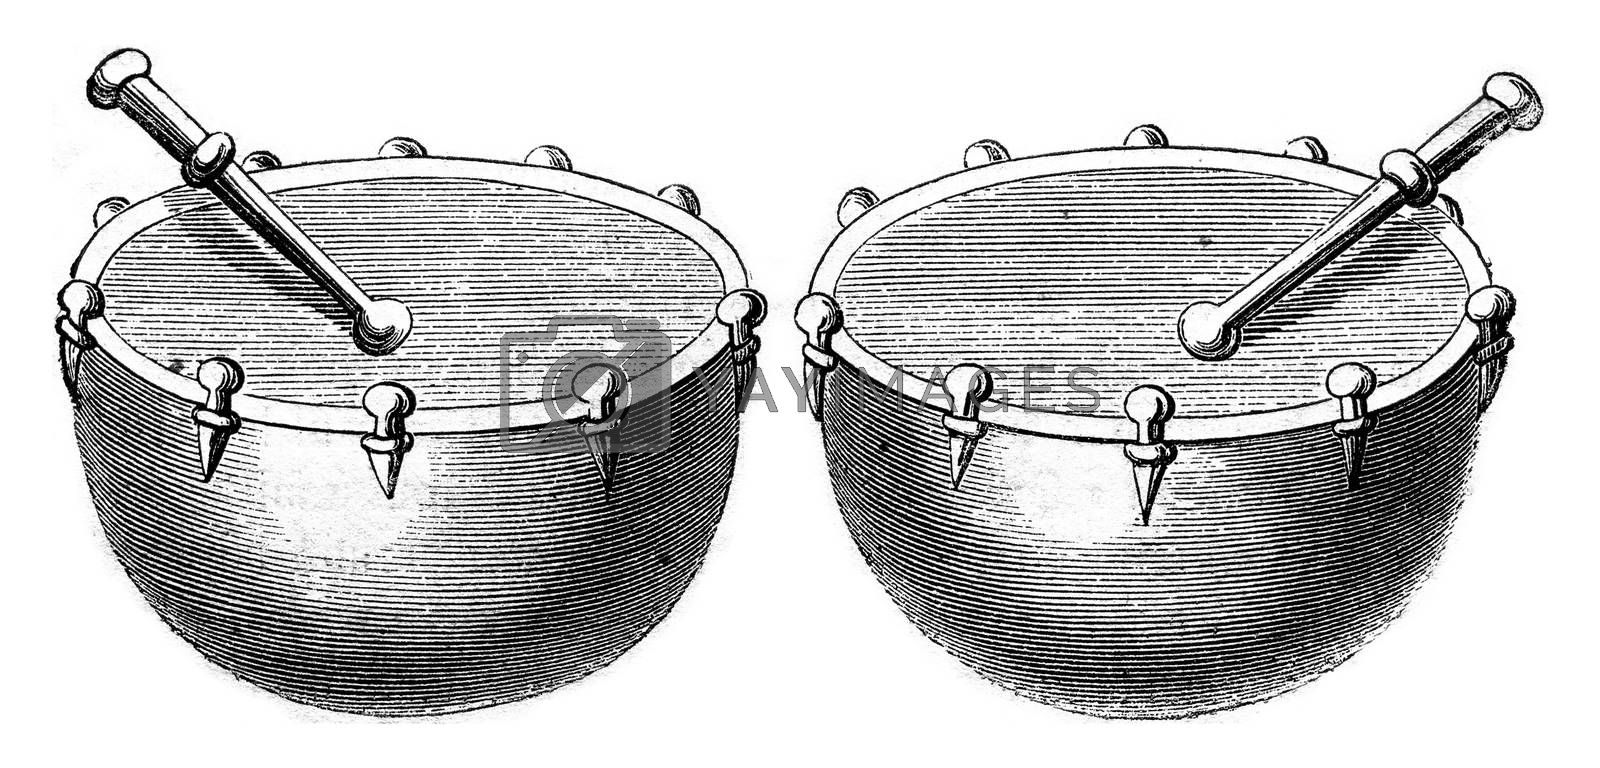 Timpani of war in 1536, vintage engraving. by Morphart